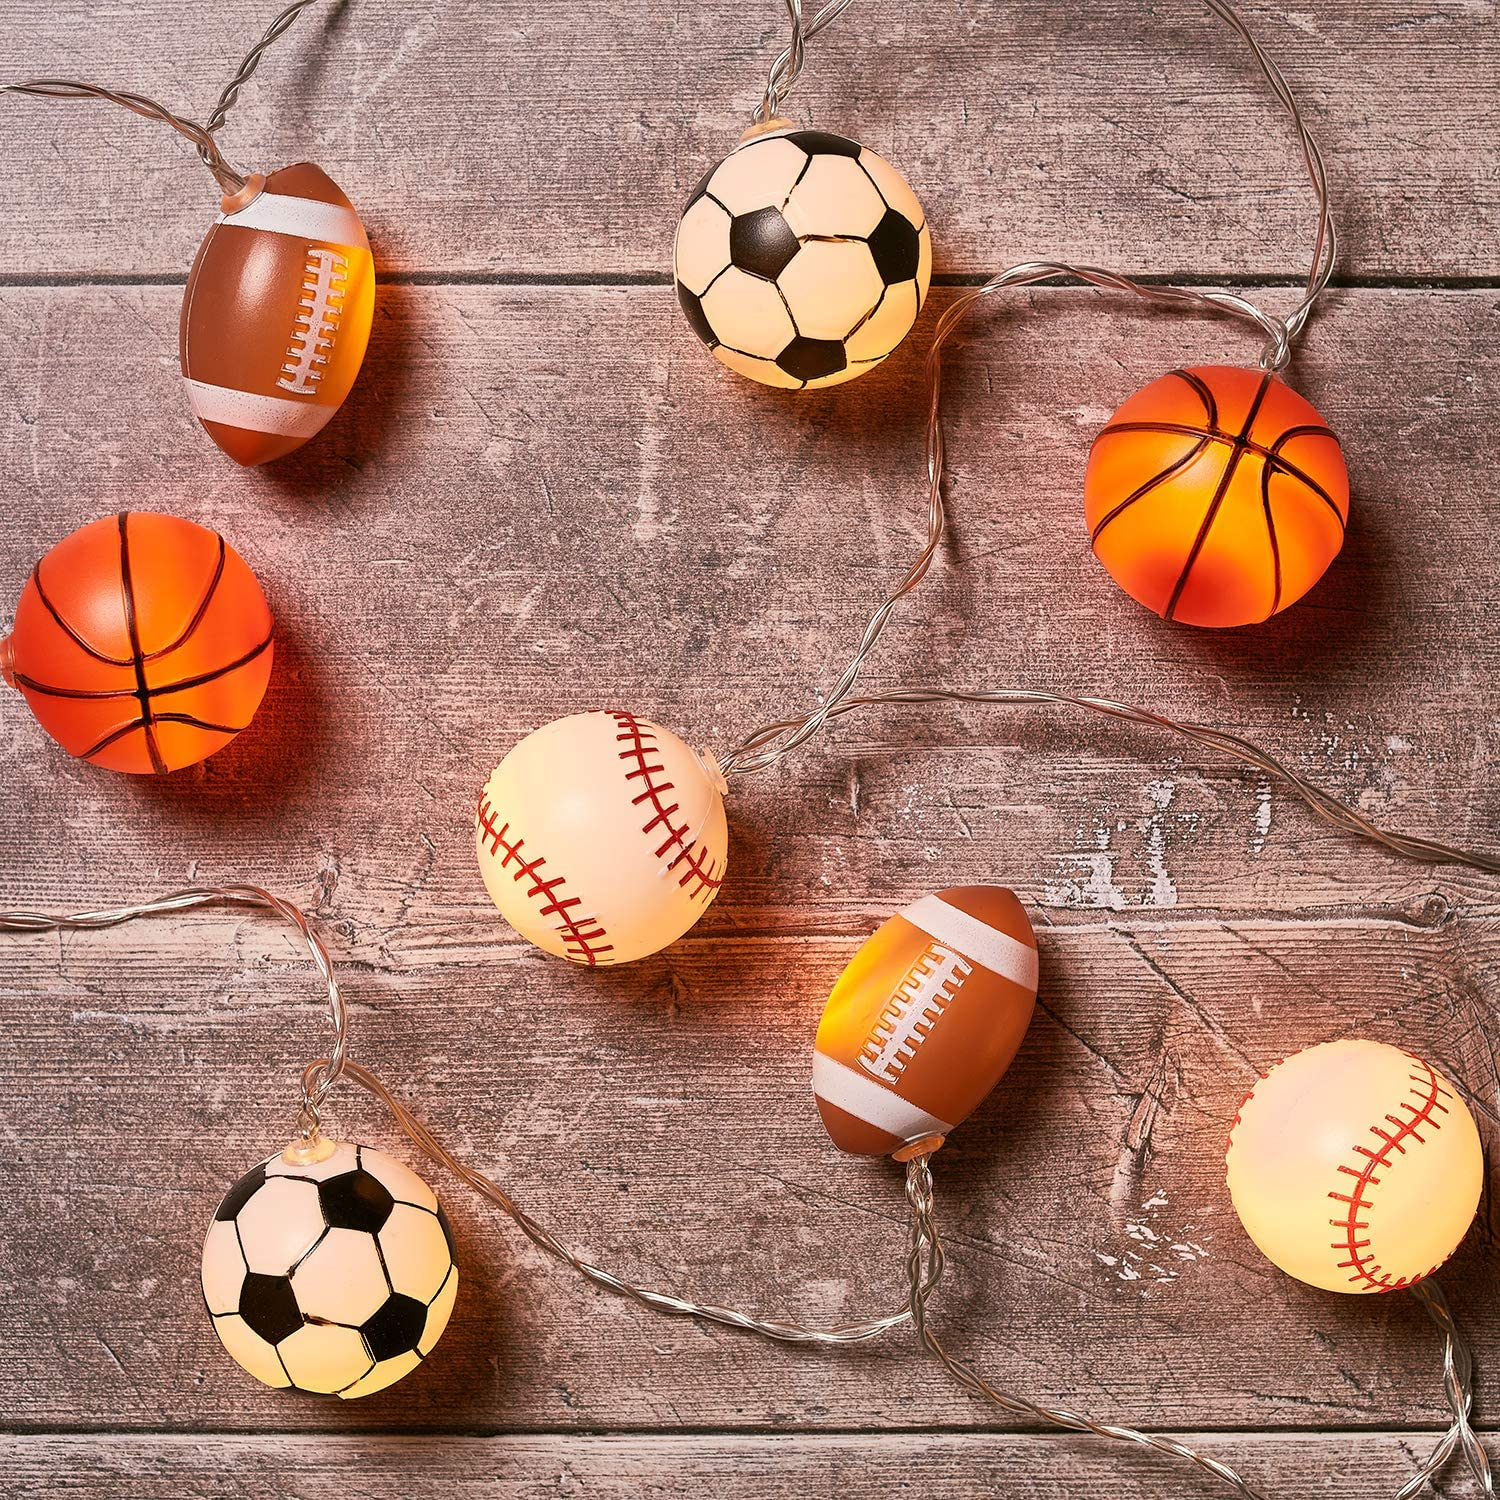 Lights4fun, Inc. 10 Sports Ball Indoor Battery Operated LED String Lights